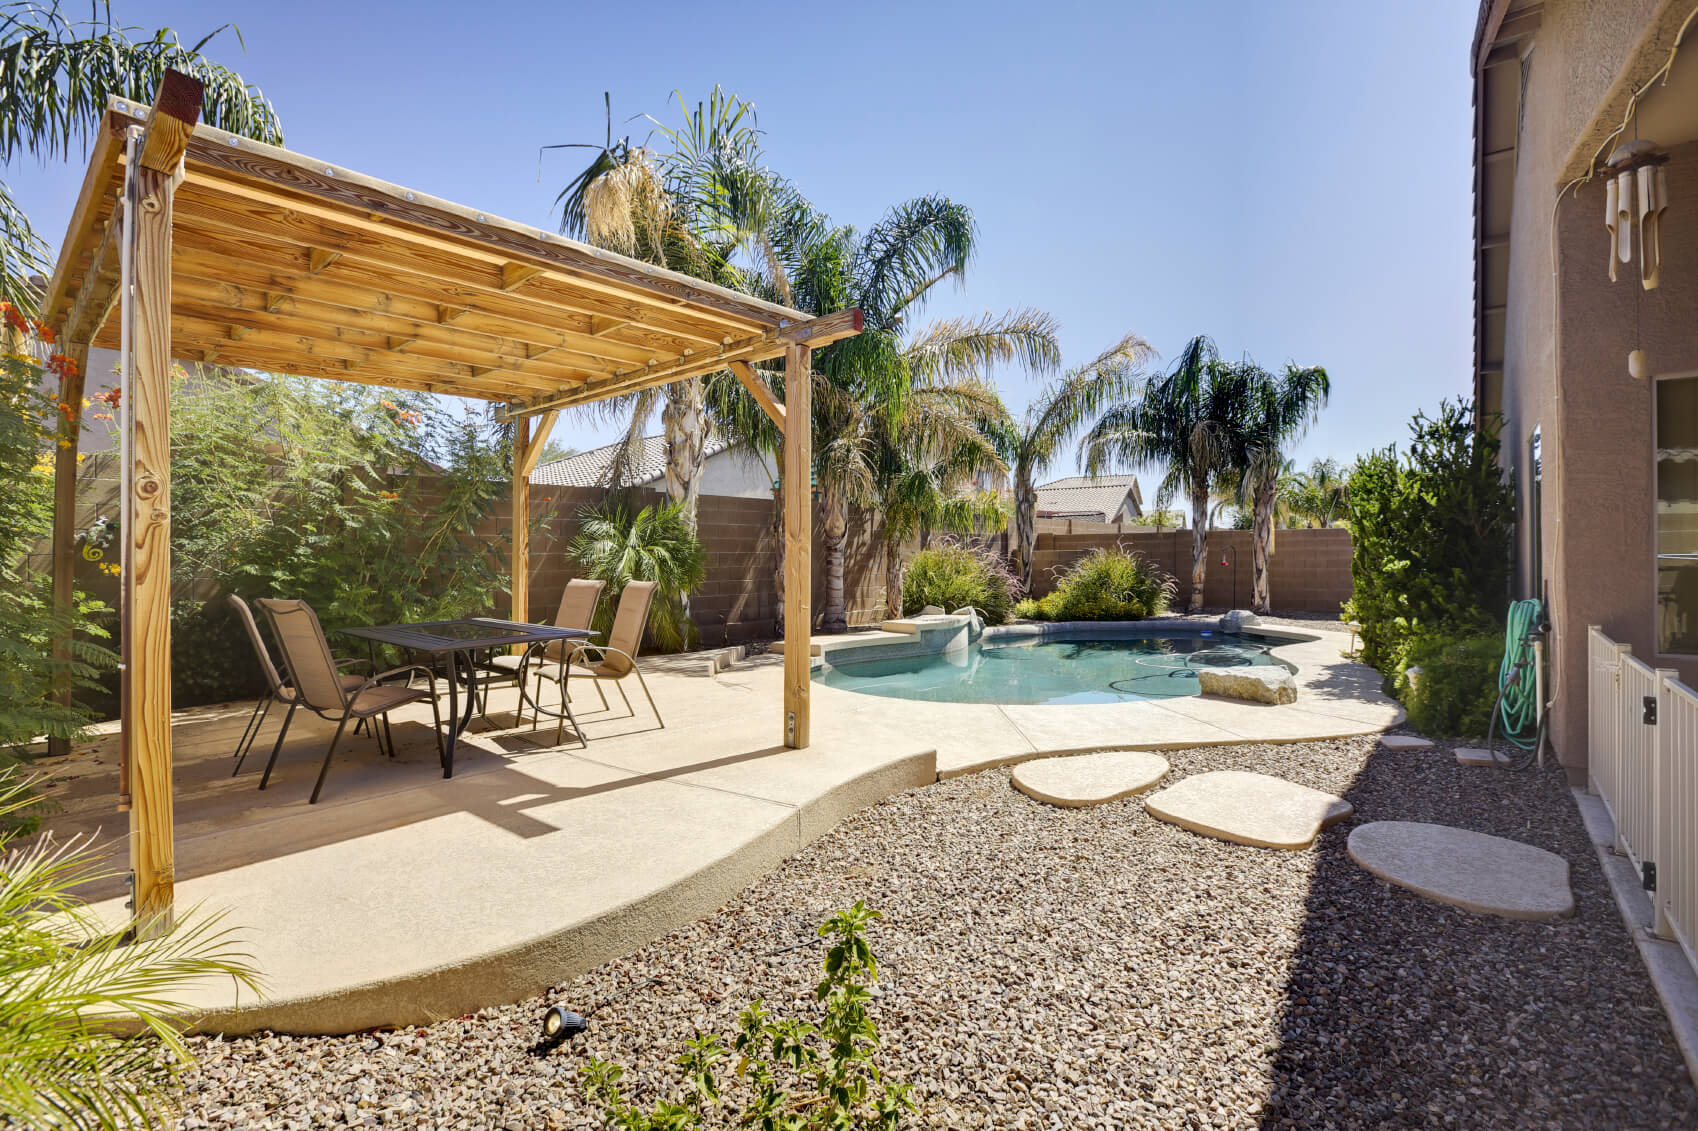 Best Patios In Phoenix Pergola Designs For Shade Amp More